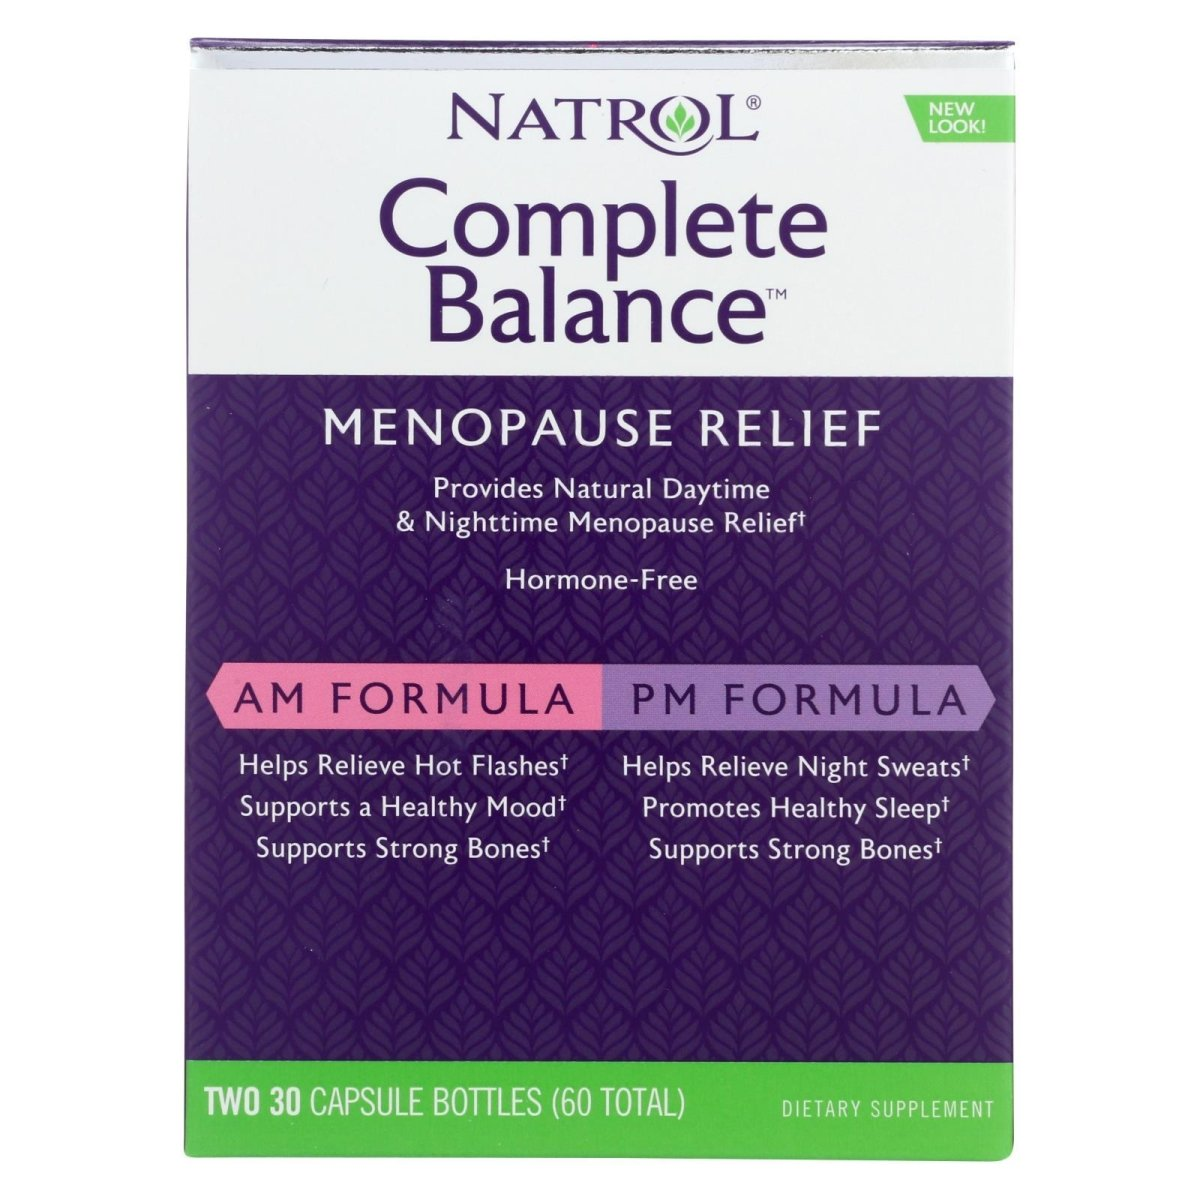 Complete Balance Menopause Relief 2 x 30 Capsule Bottles